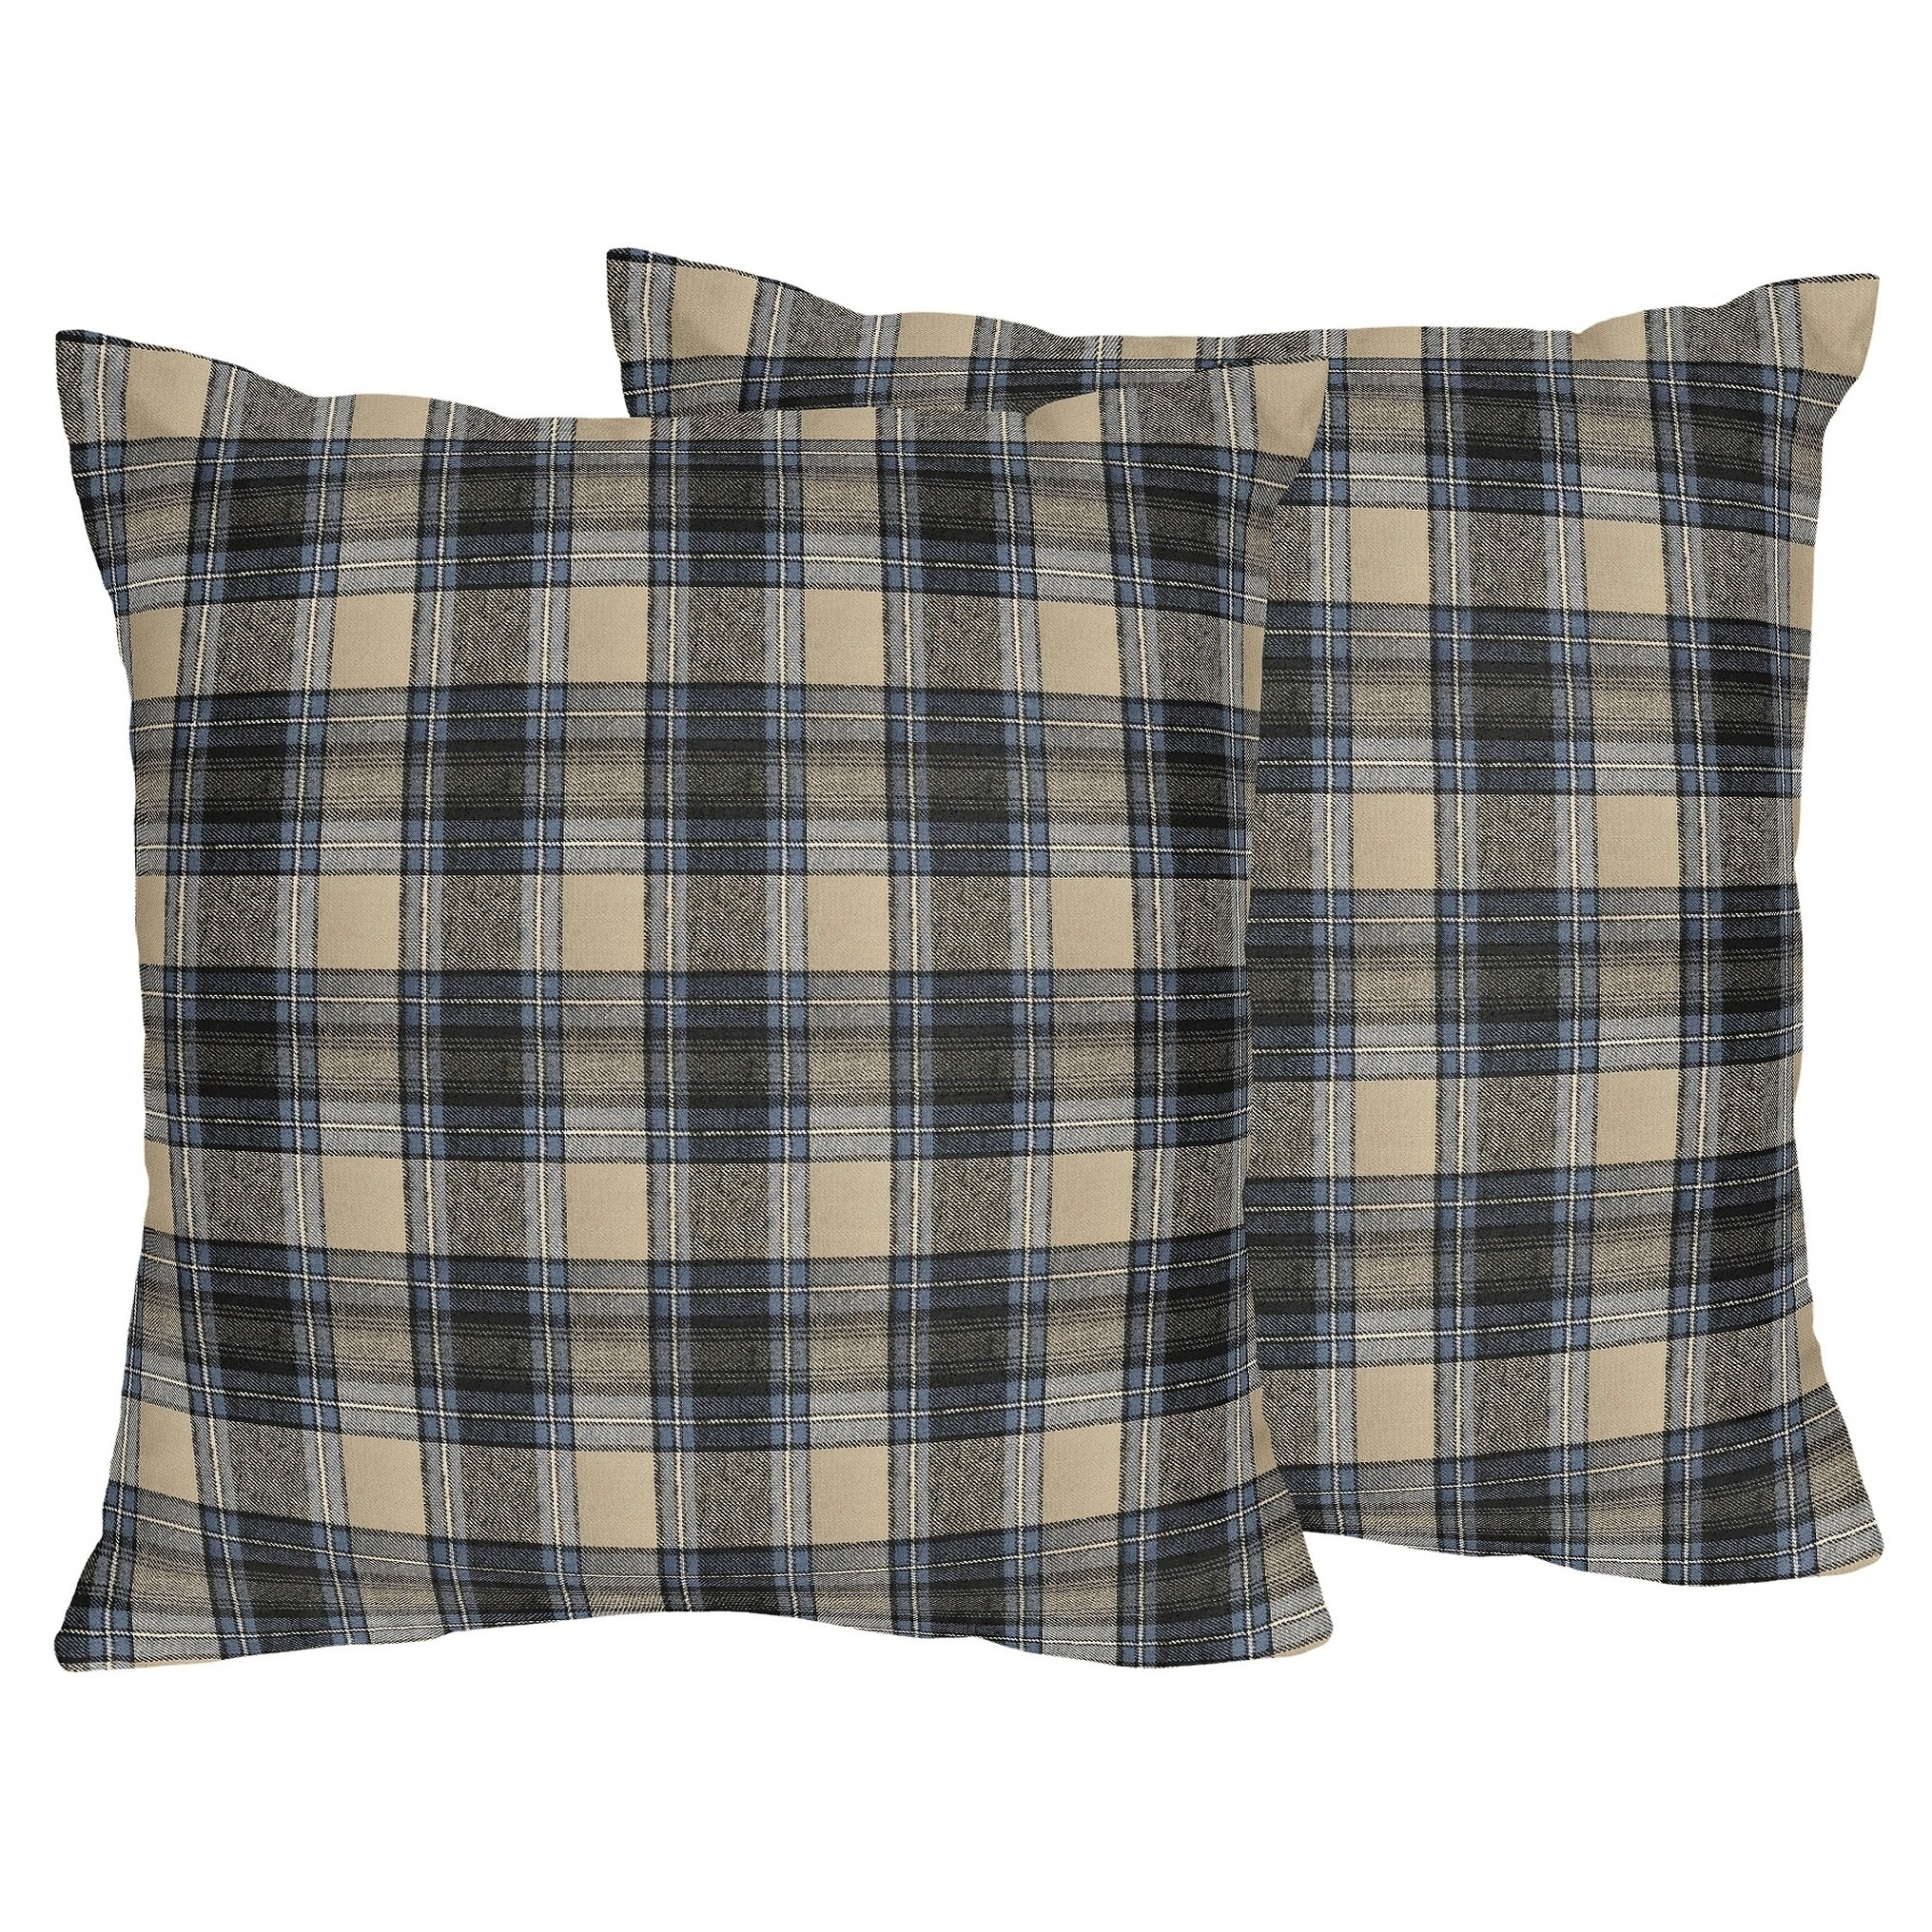 Sweet Jojo Designs Plaid Flannel 18 Inch Decorative Throw Pillows Set Of 2 Overstock 27278690